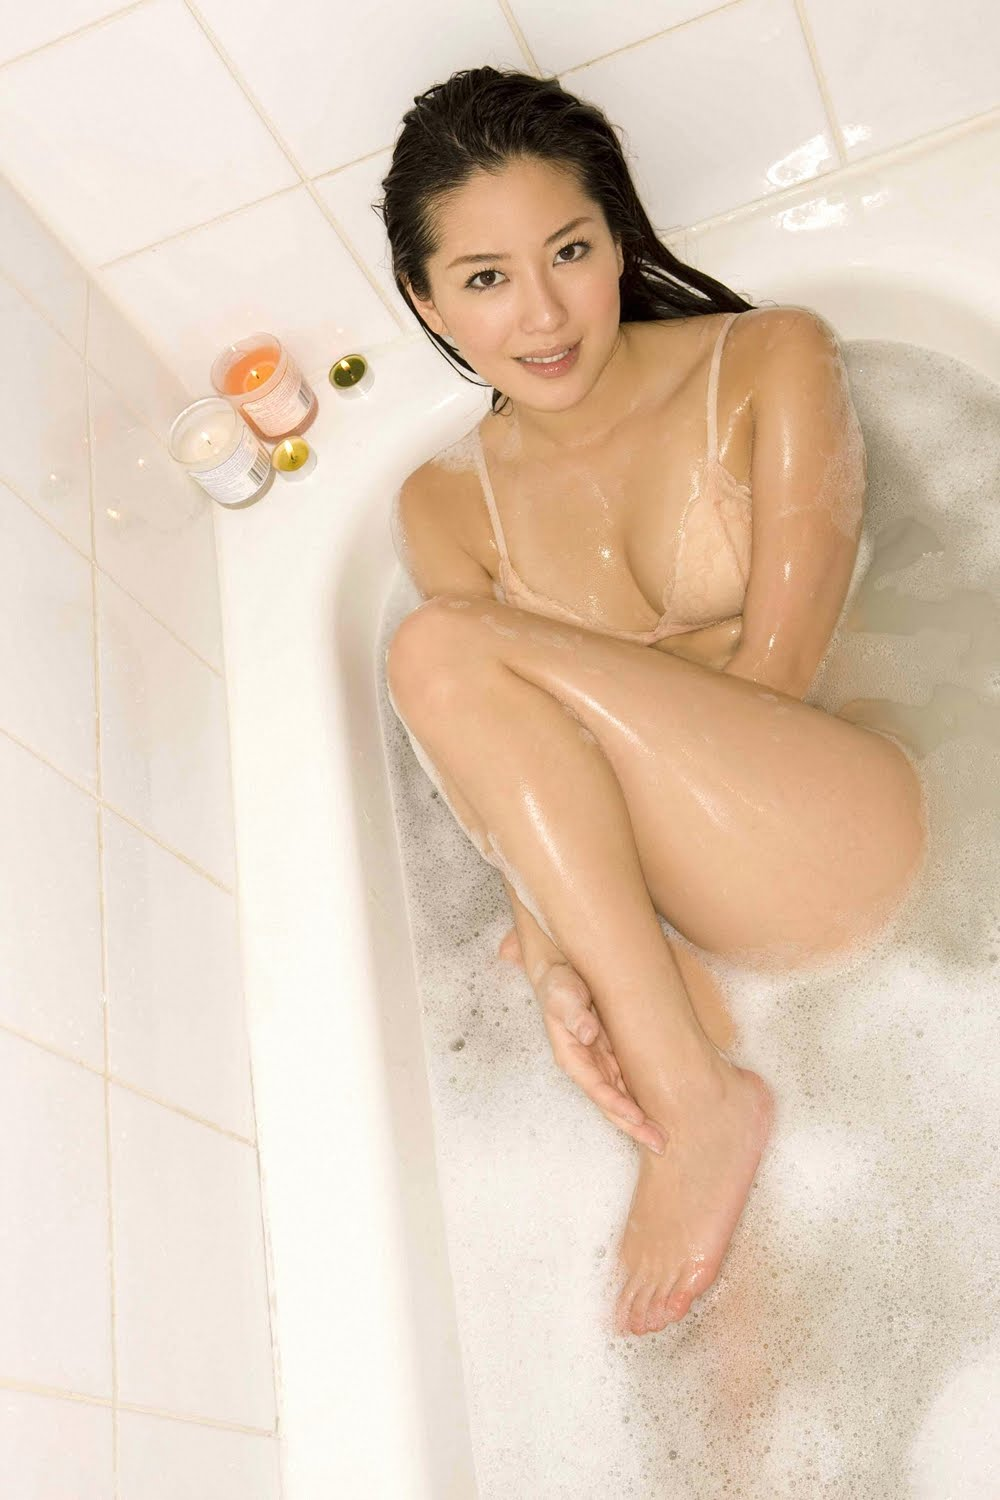 Haruna yabuki take a bath asian girls sexy for Hot bathroom